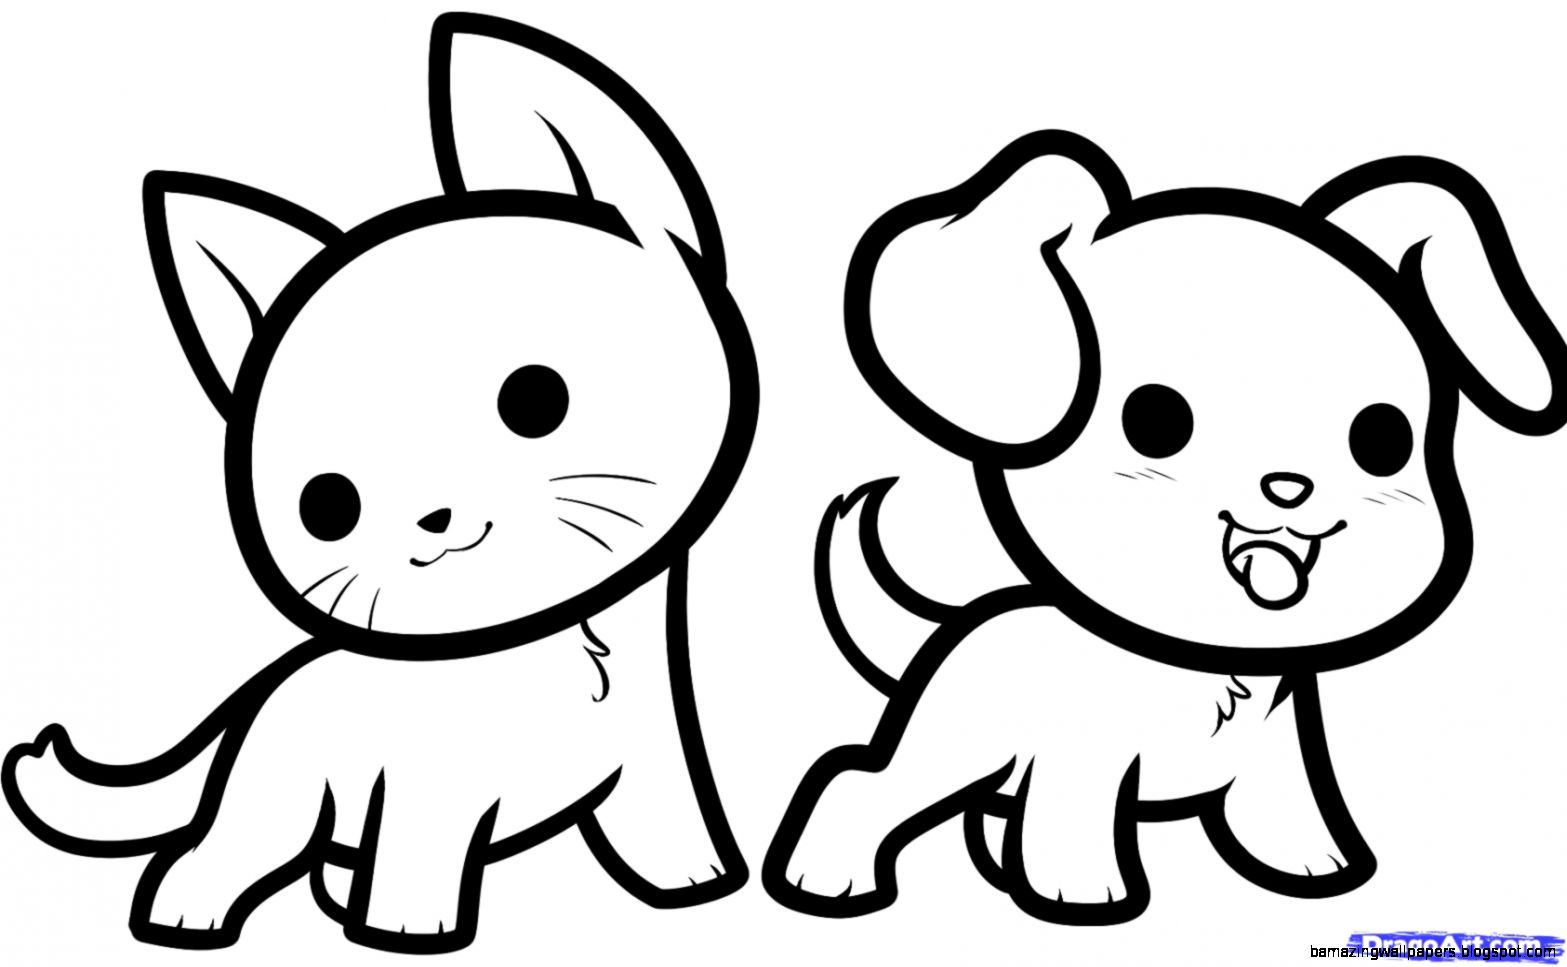 HOW TO DRAW ANIMALS CUTE  How to Draw